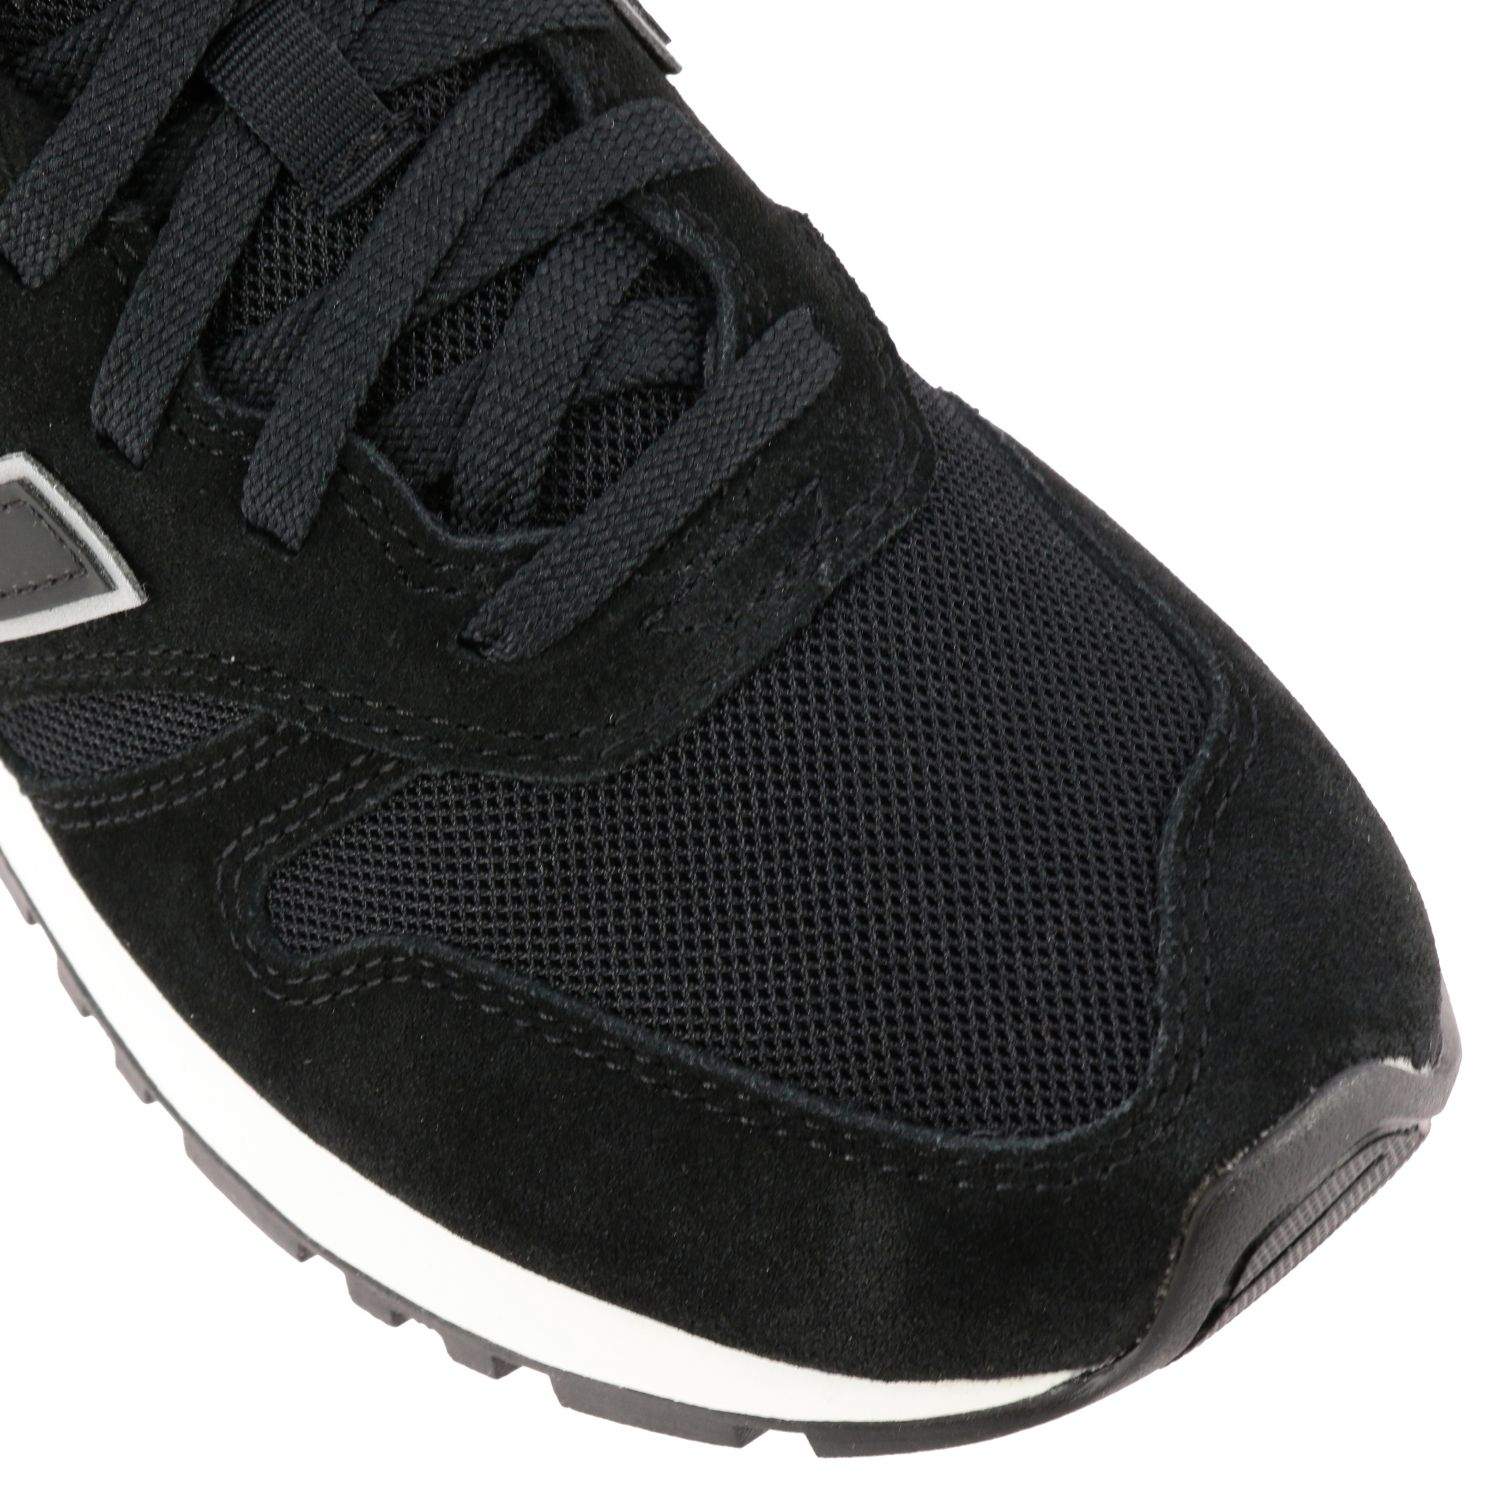 Trainers New Balance: Shoes men New Balance black 4